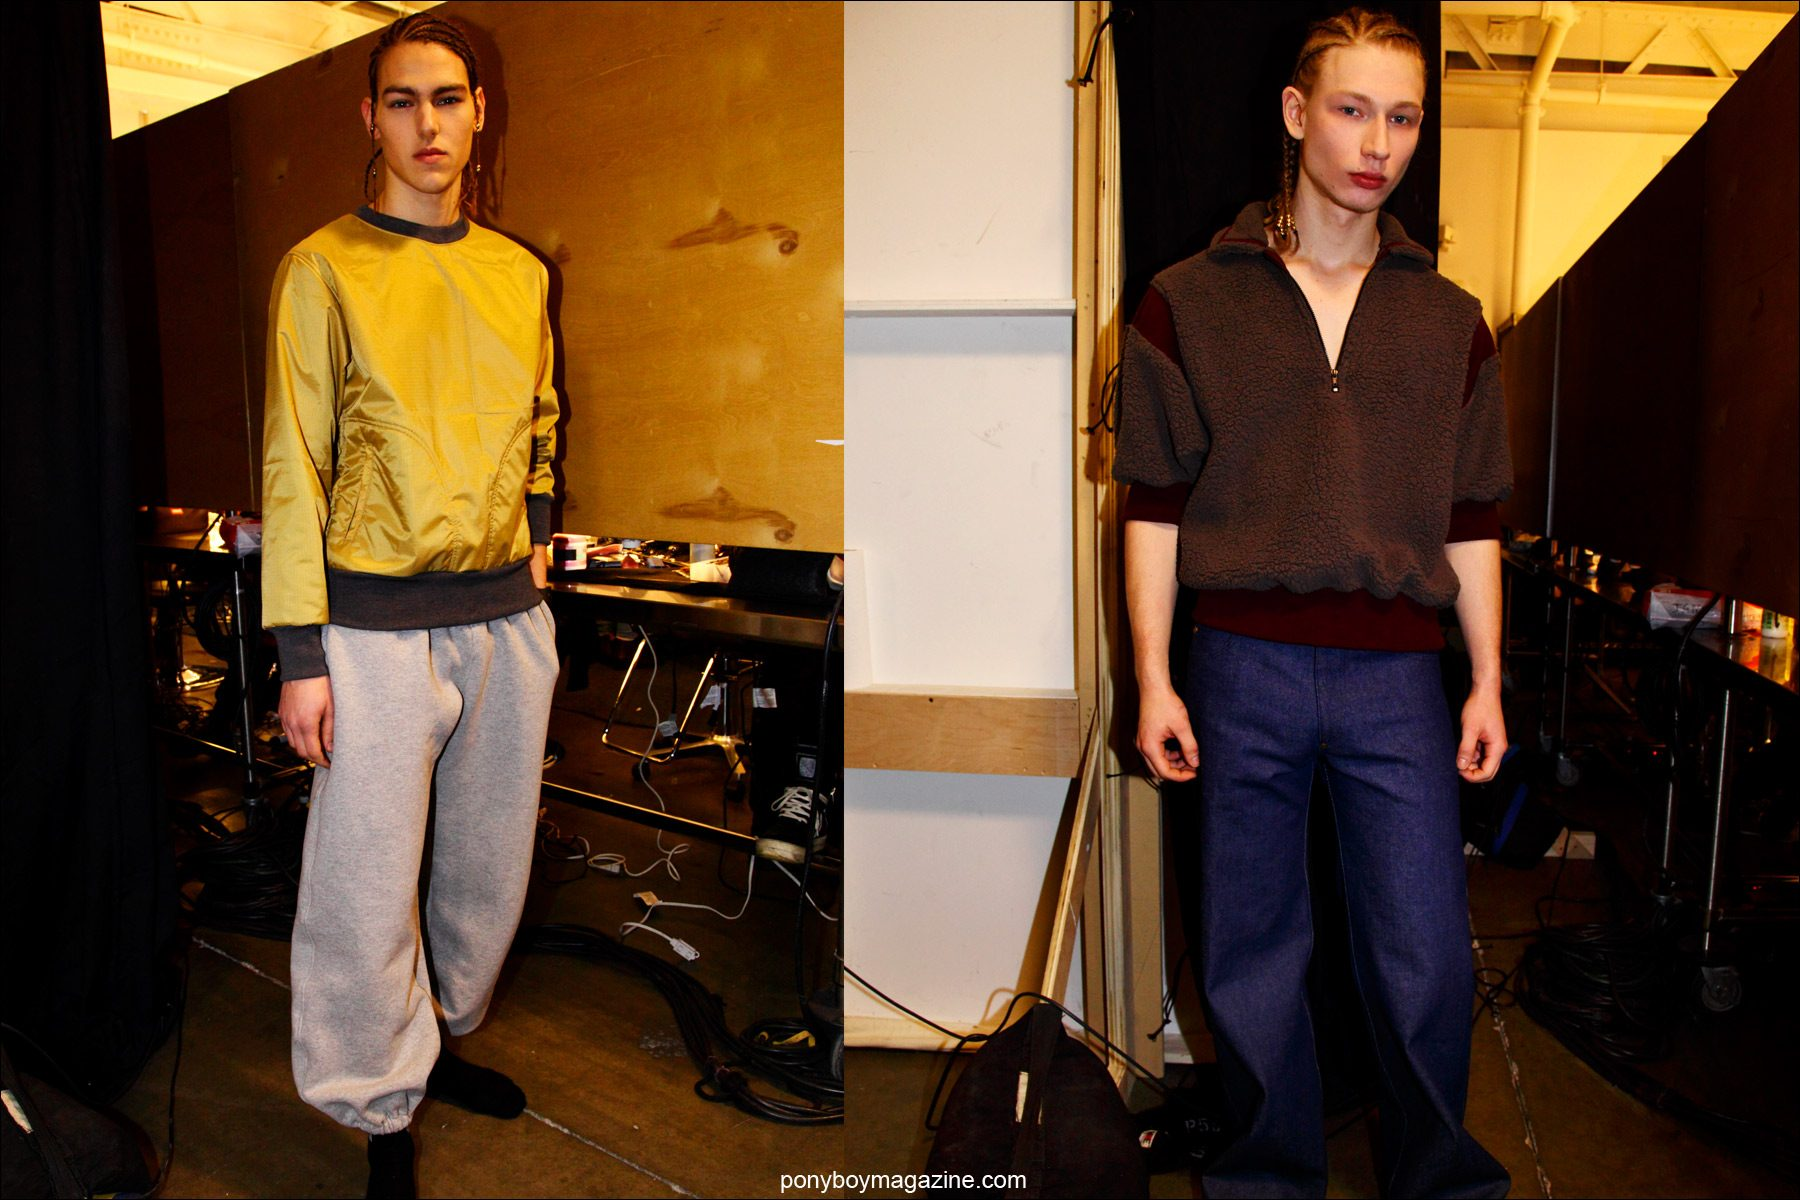 Male models wearing the latest menswear by New York designer Martin Keehn, F/W15 collection. Photographed backstage at Pier 59 Studios NY by Ponyboy magazine photographer Alexander Thompson.